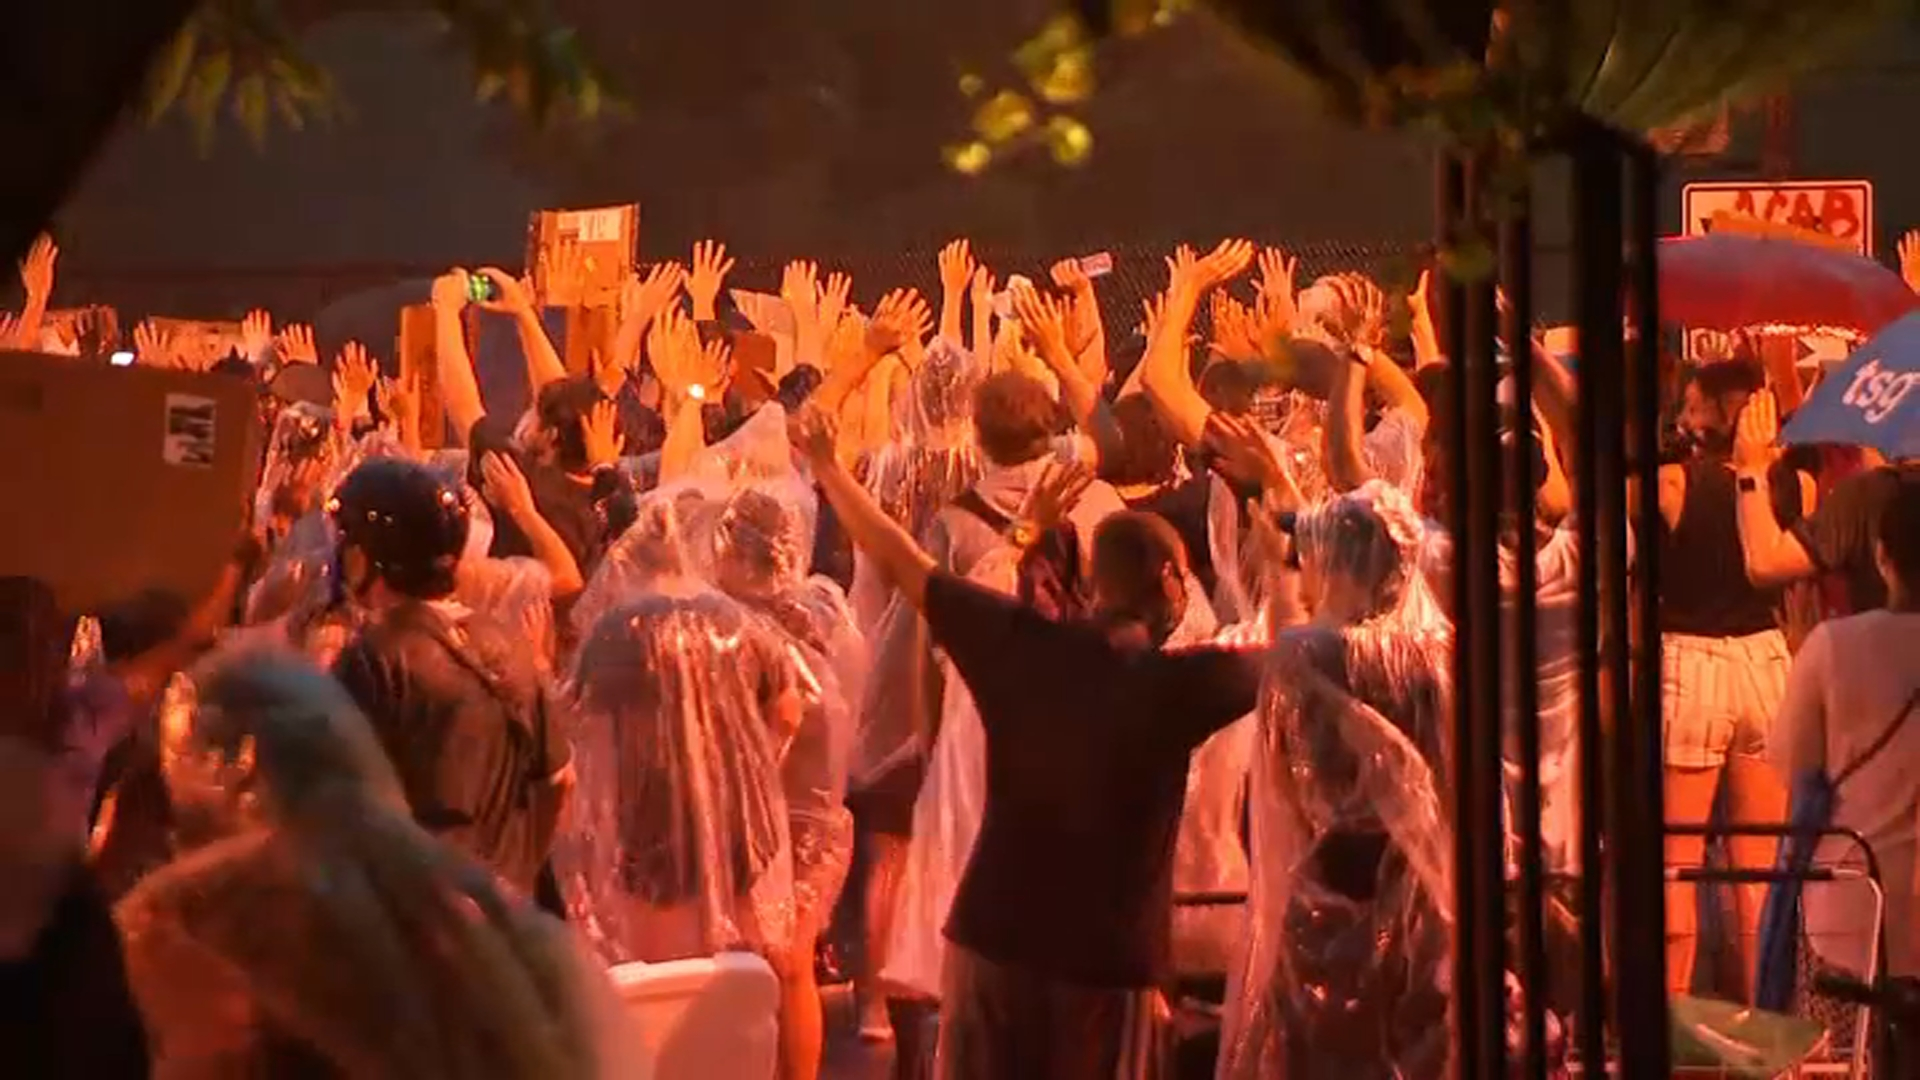 2 National Guard Hurt by Lightning Strike as Storms Hit DC Protests